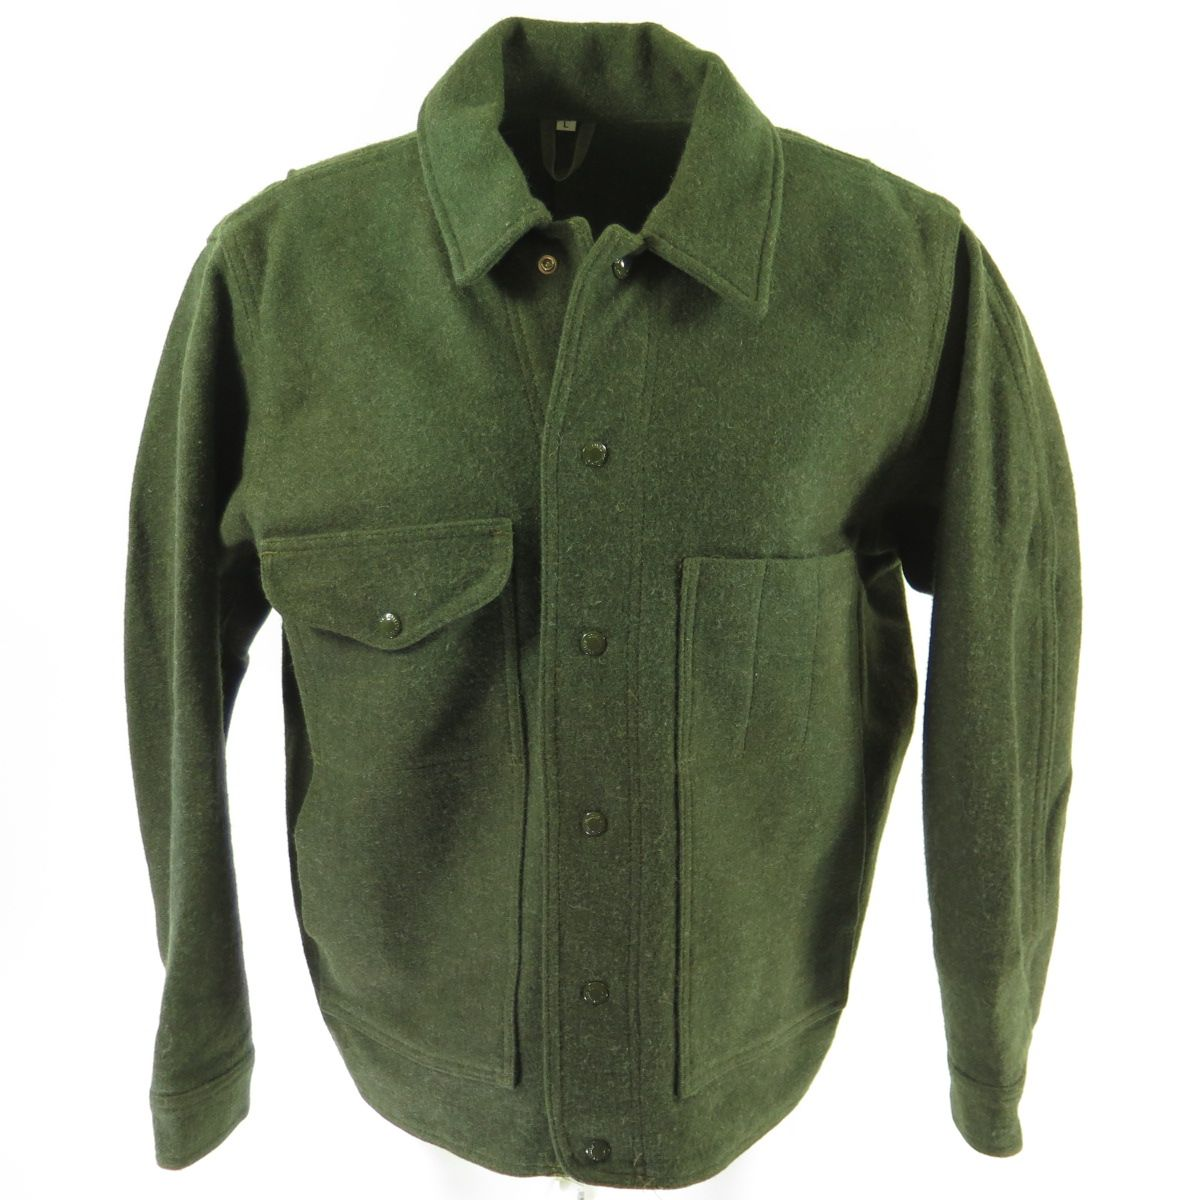 What is the name for a short jacket?